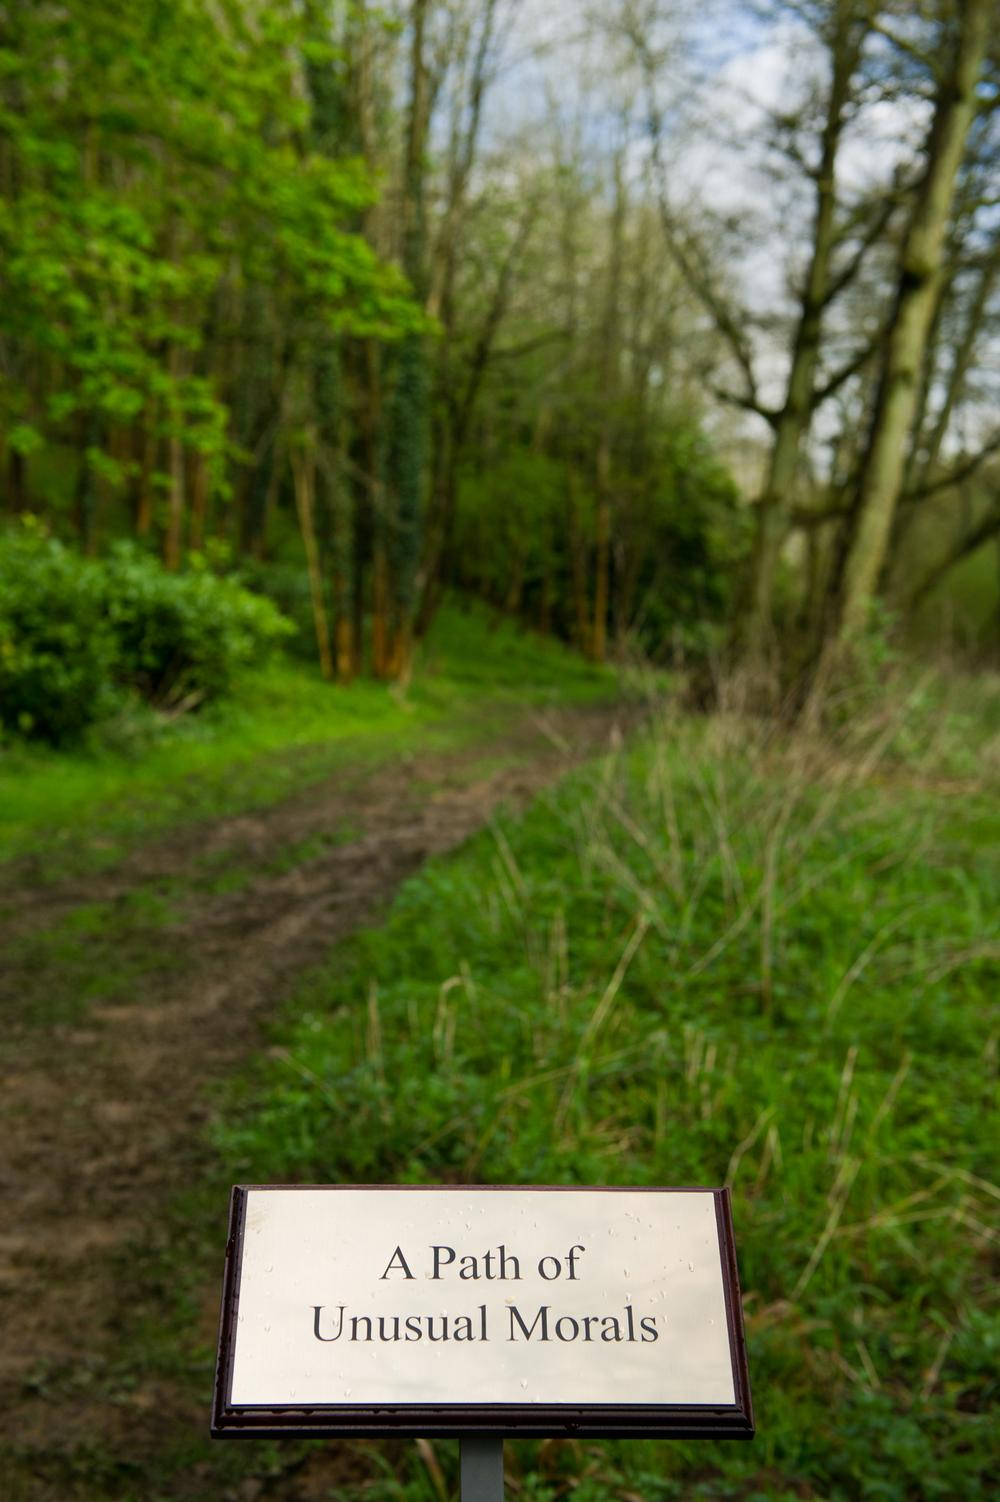 A Path of Unusual Morals (1 of 7 garden plaques)